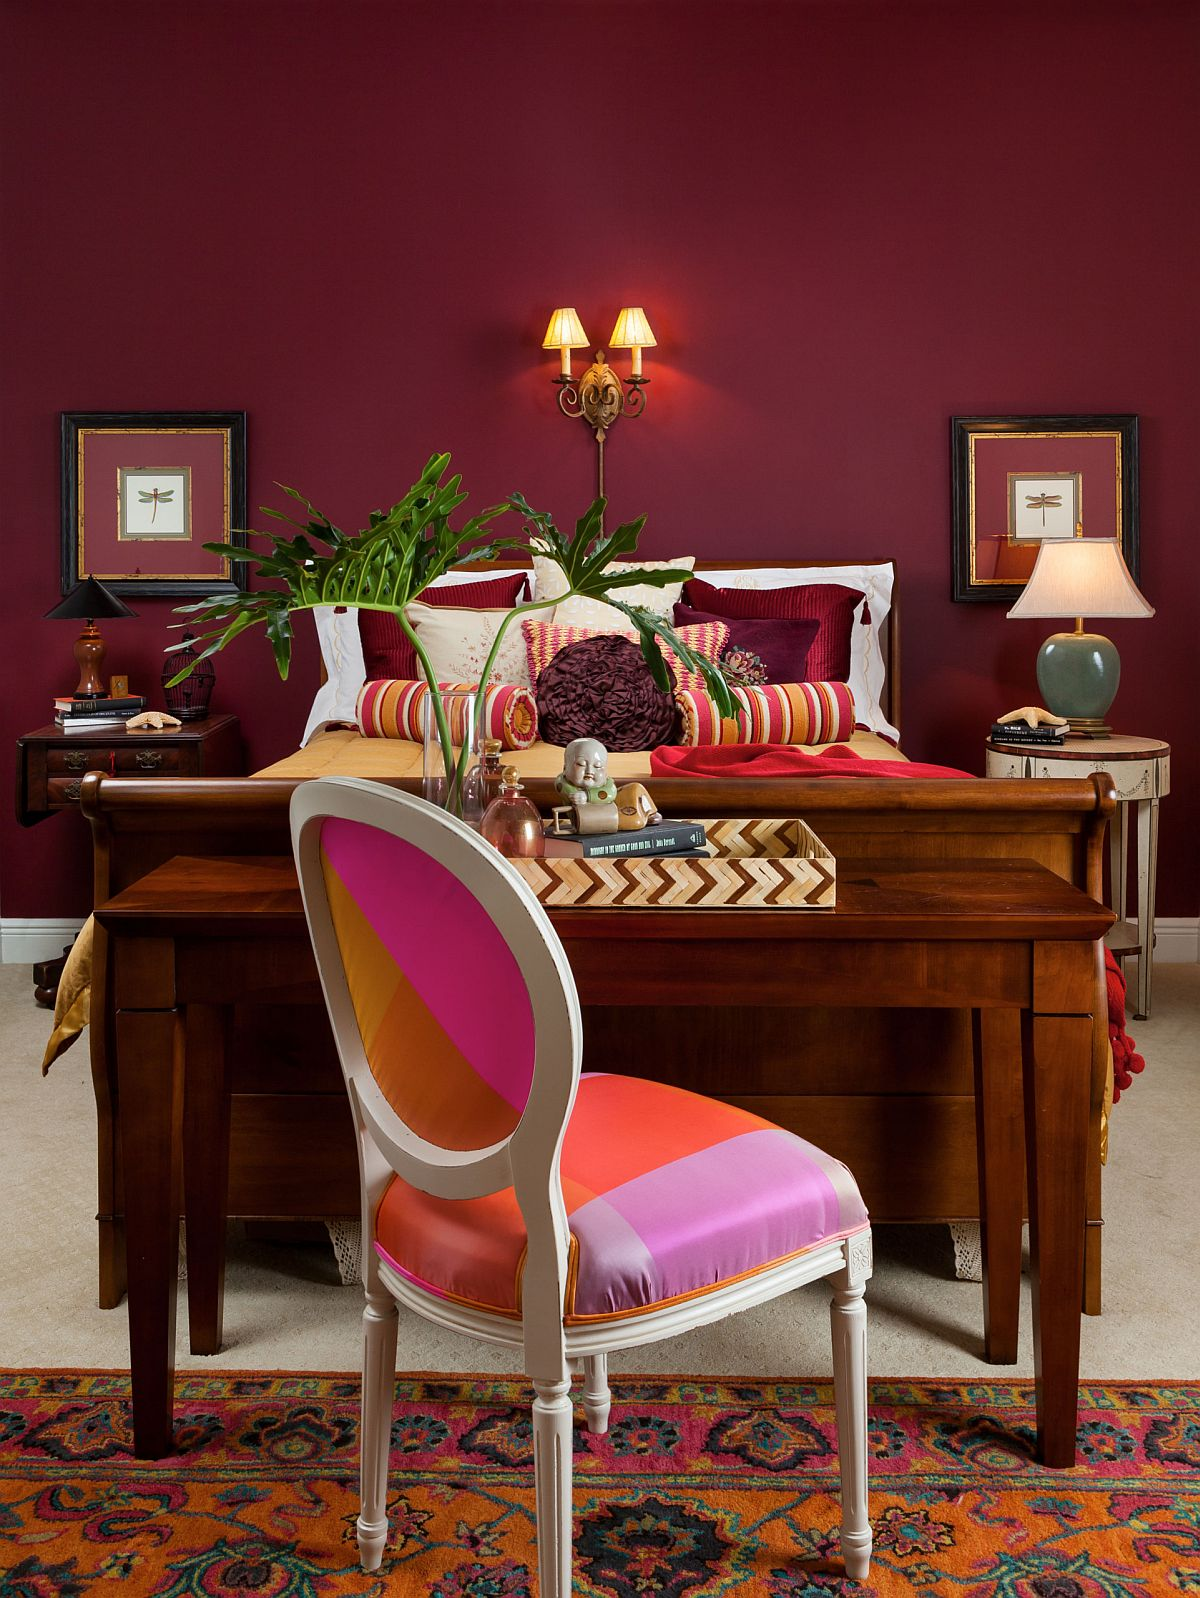 Contemporary-burgundy-bedroom-is-an-absolute-visual-treat-14979